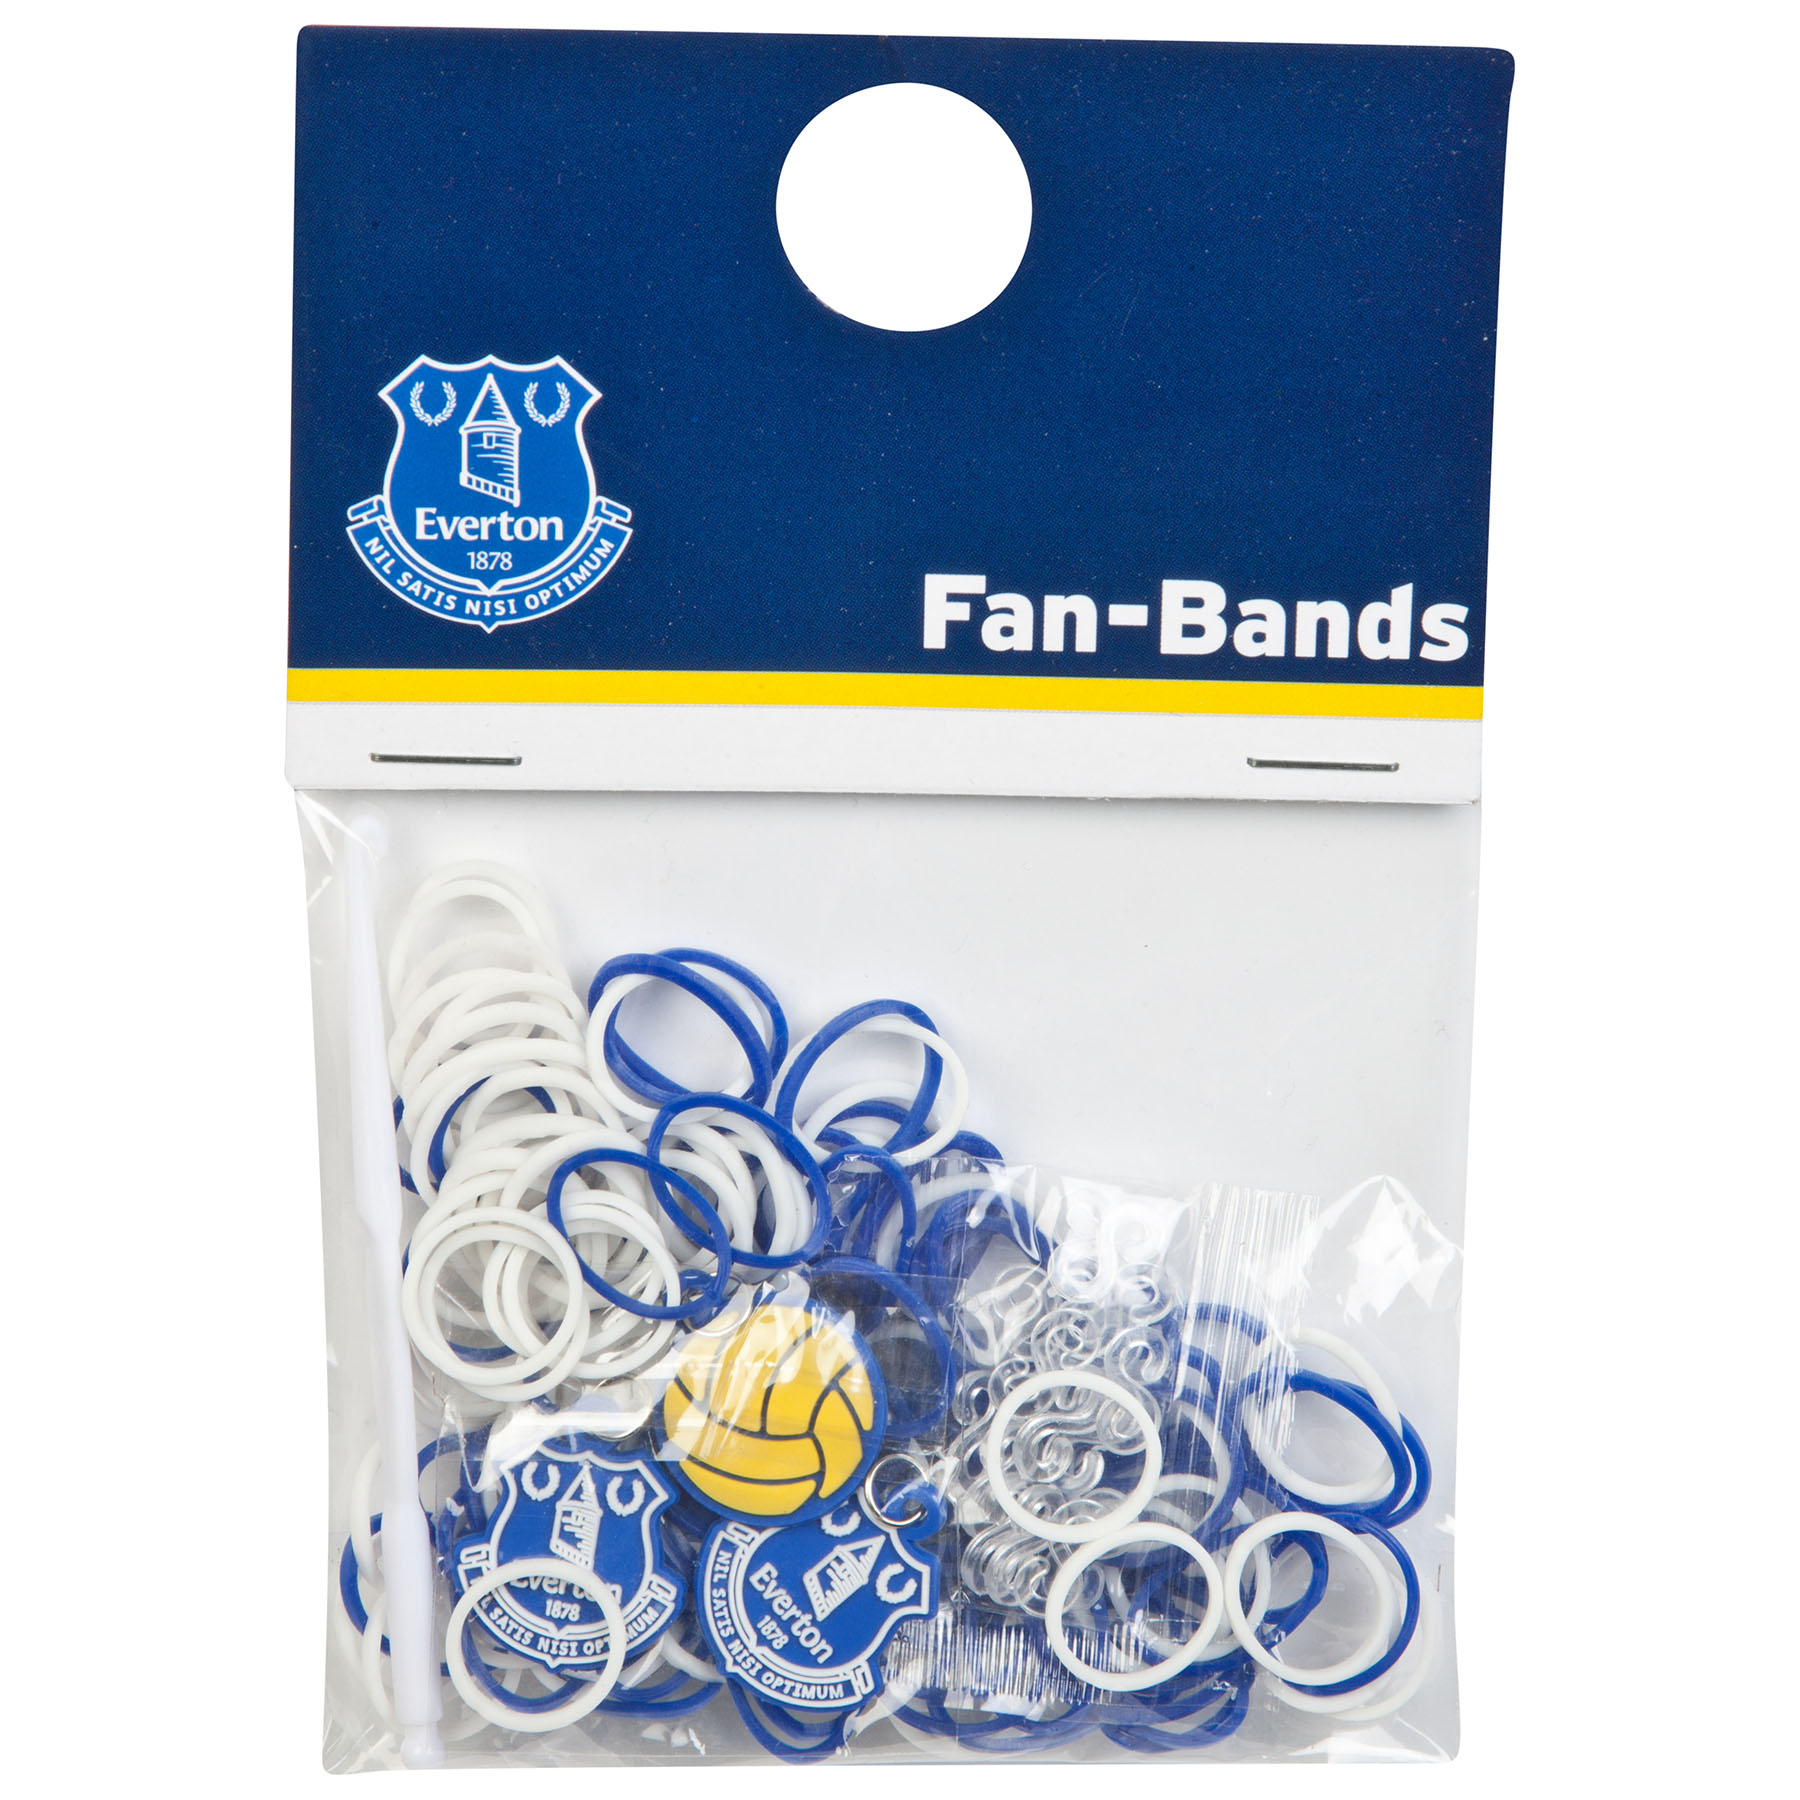 Everton Fan-Bands